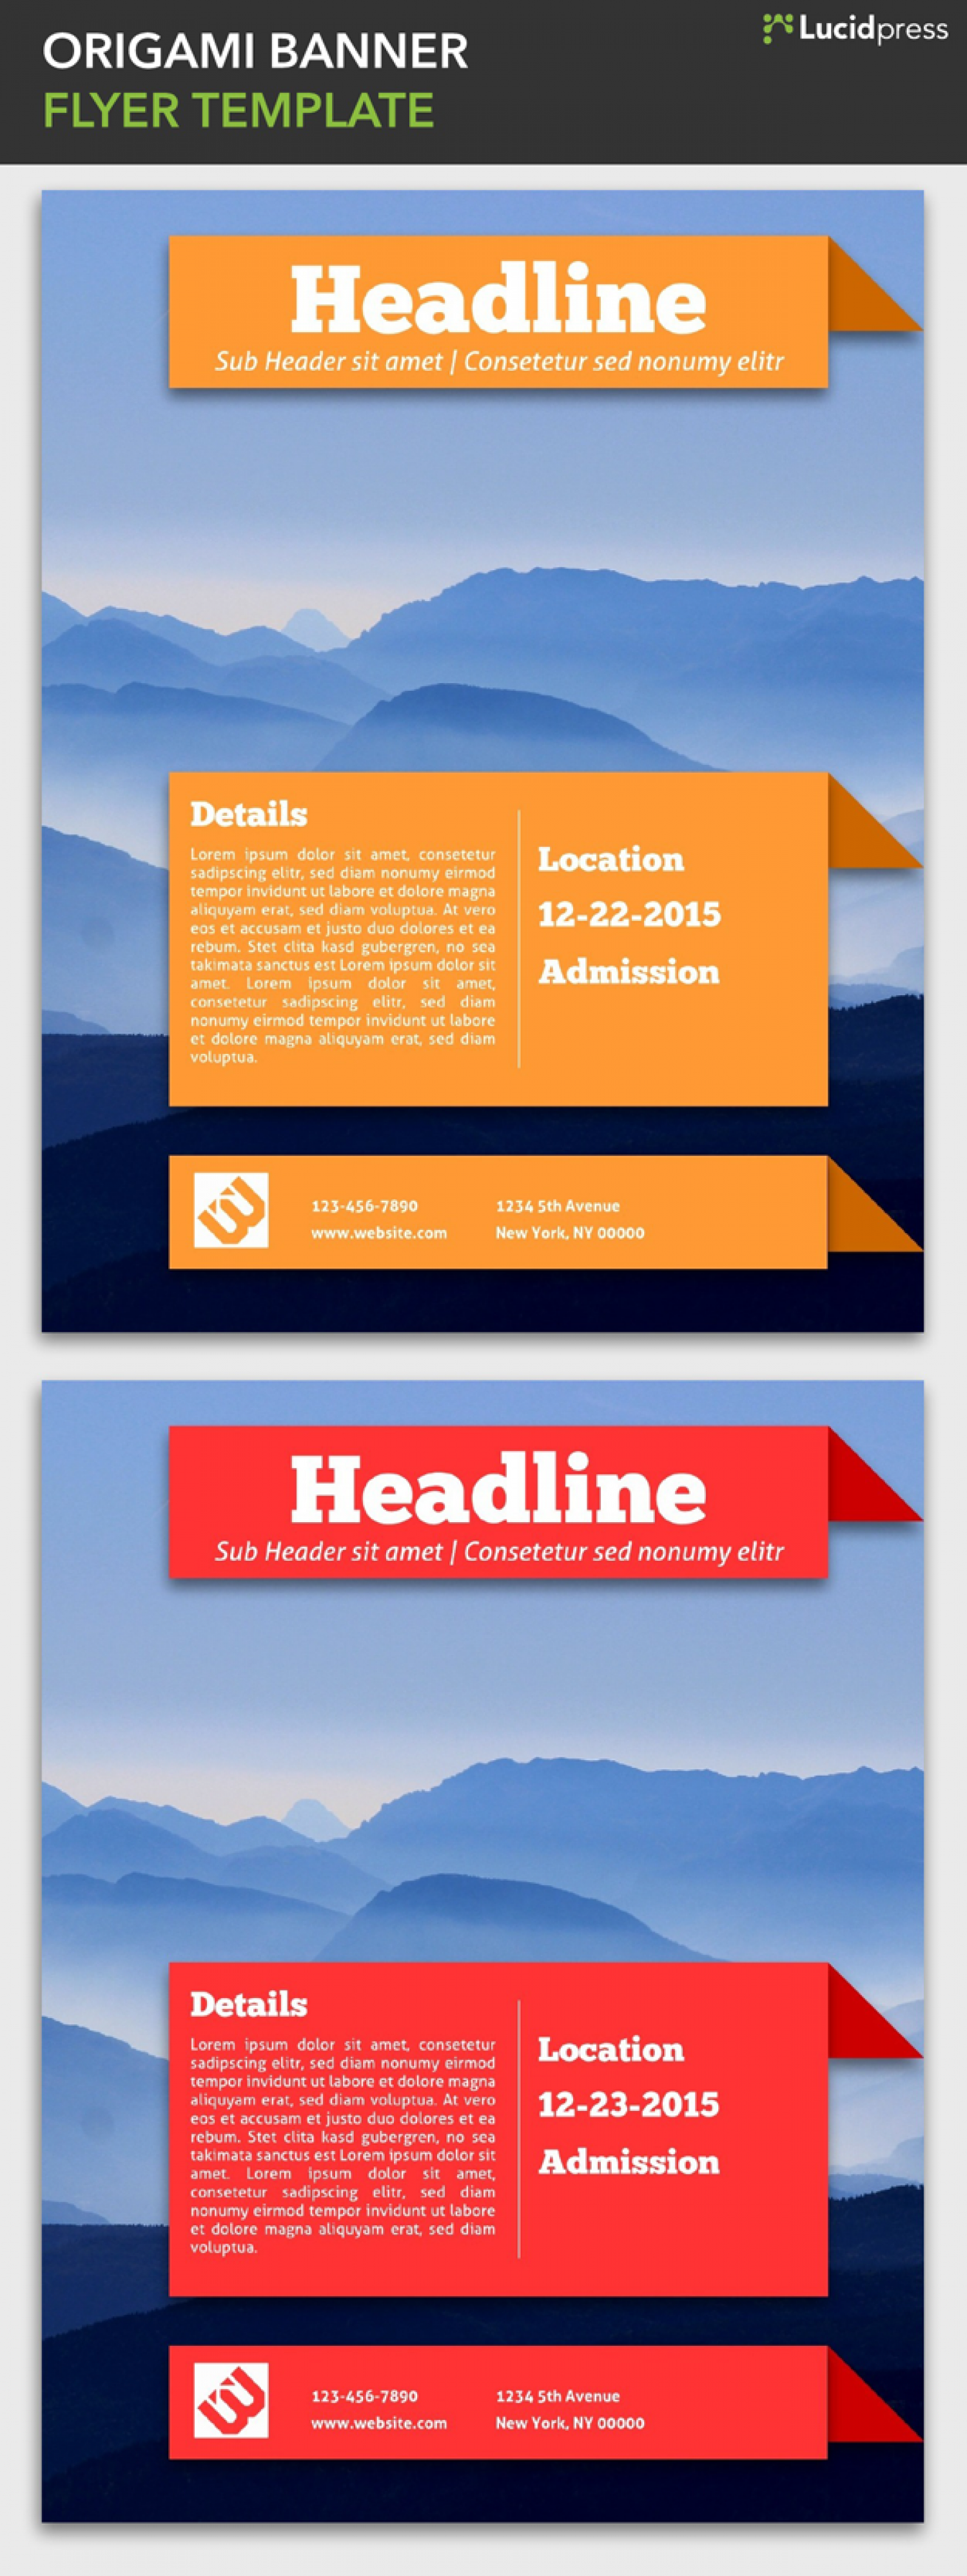 Event Flyer Templates | Lucidpress | Visual.ly